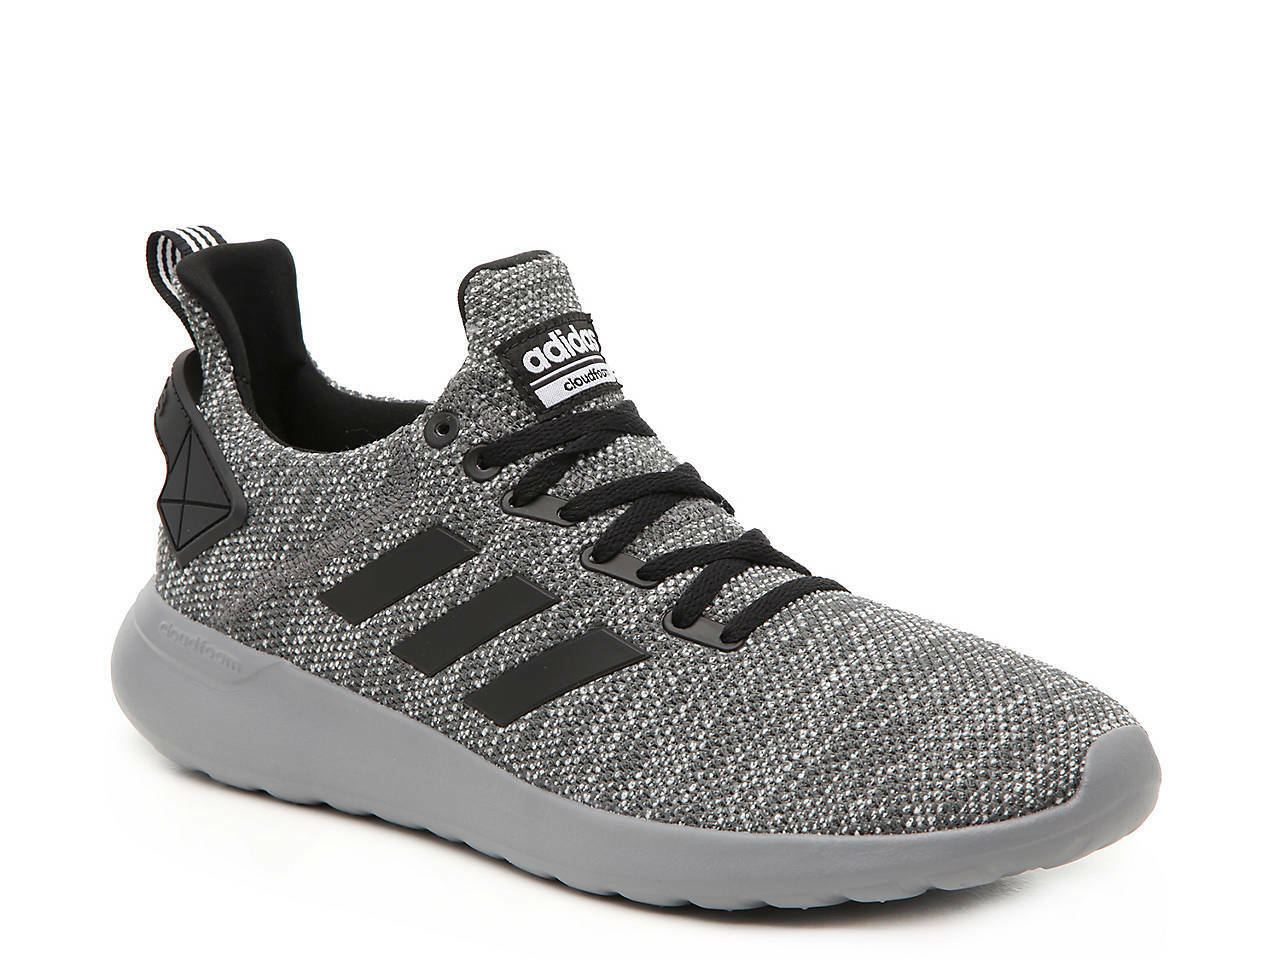 adidas Originals Lite Racer BYD Shoes Men's - Grey/Black - 1